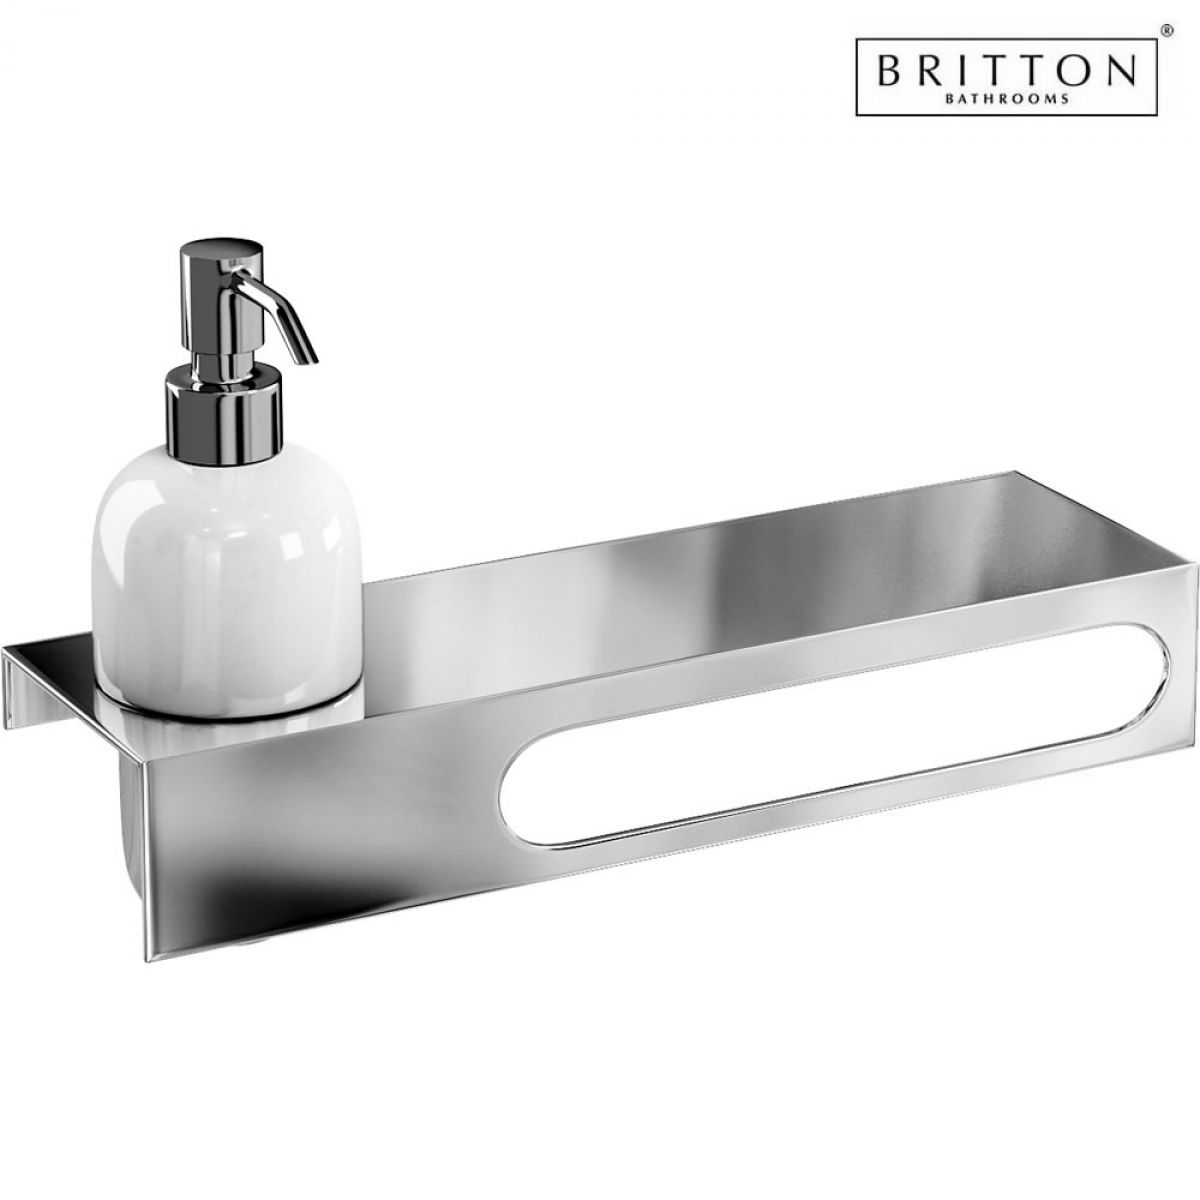 Towel Soap Dispenser ~ Britton stainless steel shelf with towel rail and soap